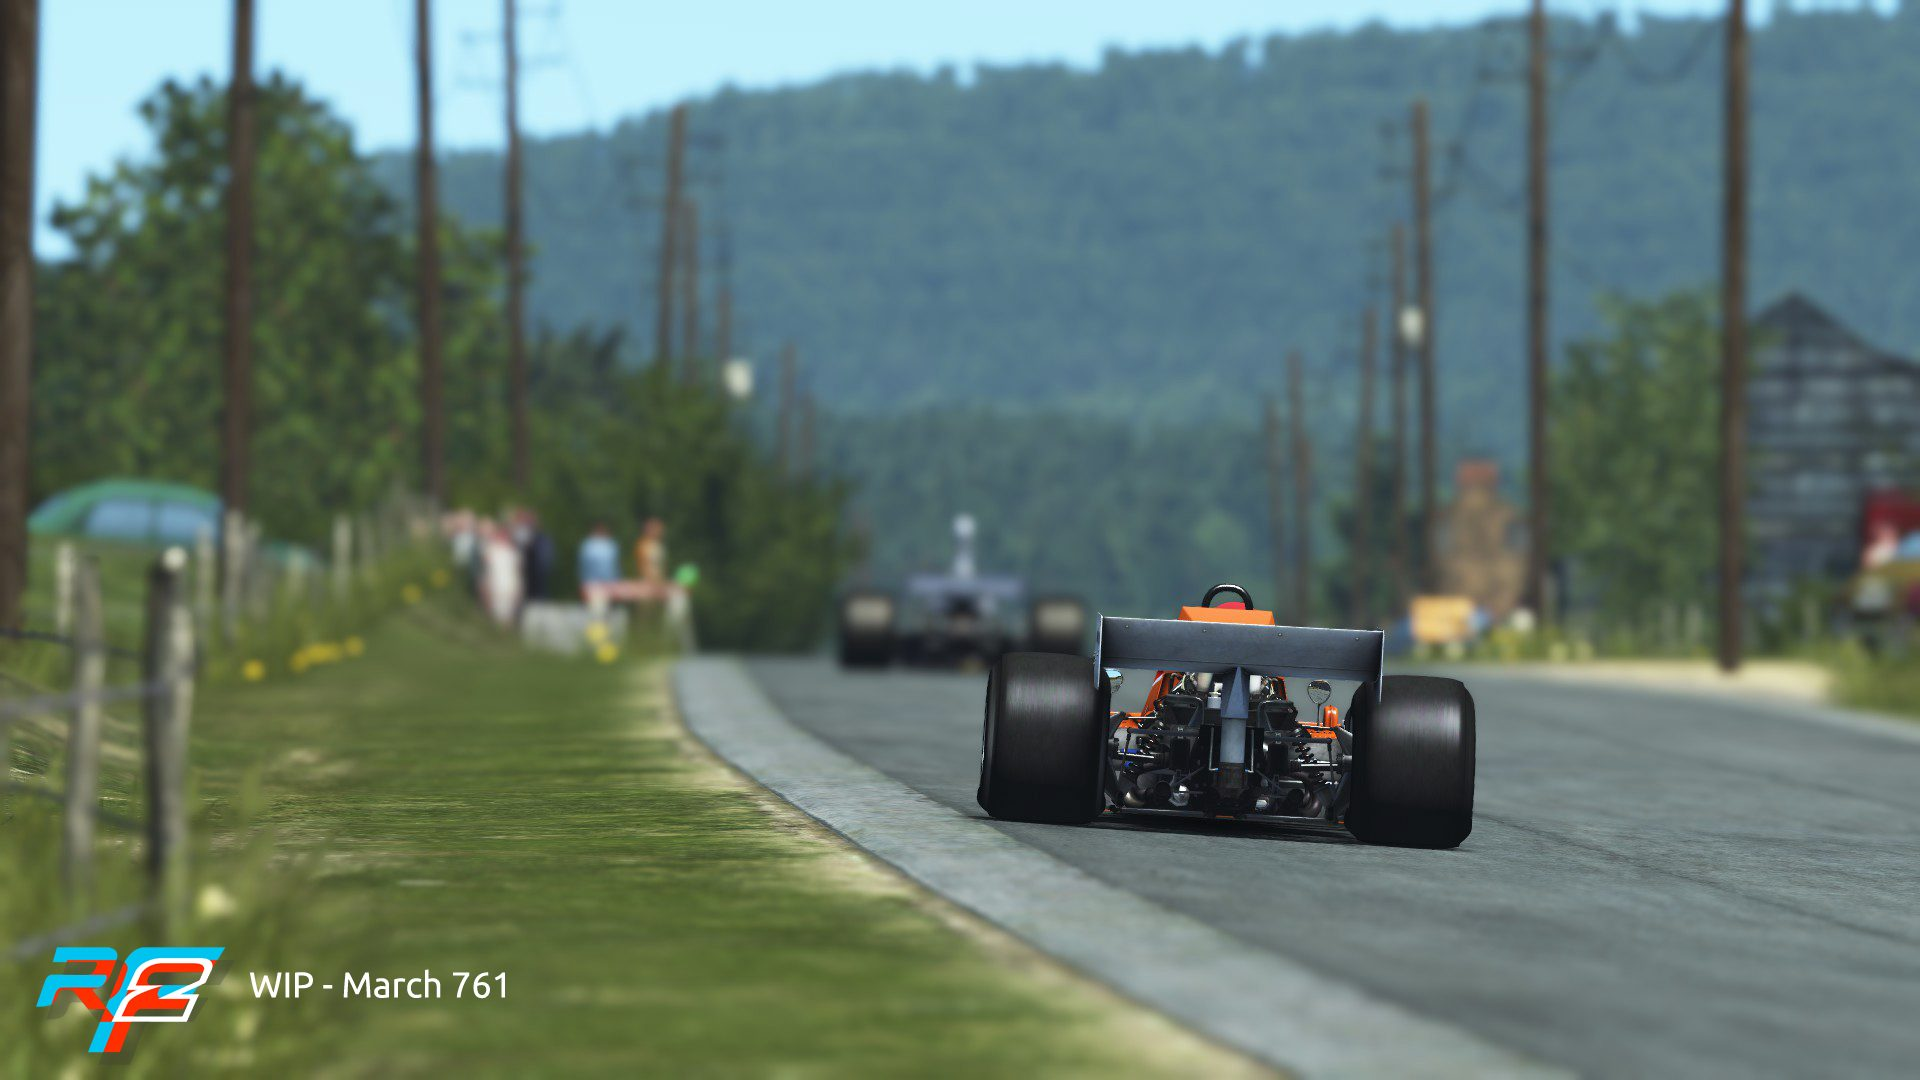 rfactor2] rFactor2 [Updates] - Page 9 - rFactor 2 - PC Gaming Forum